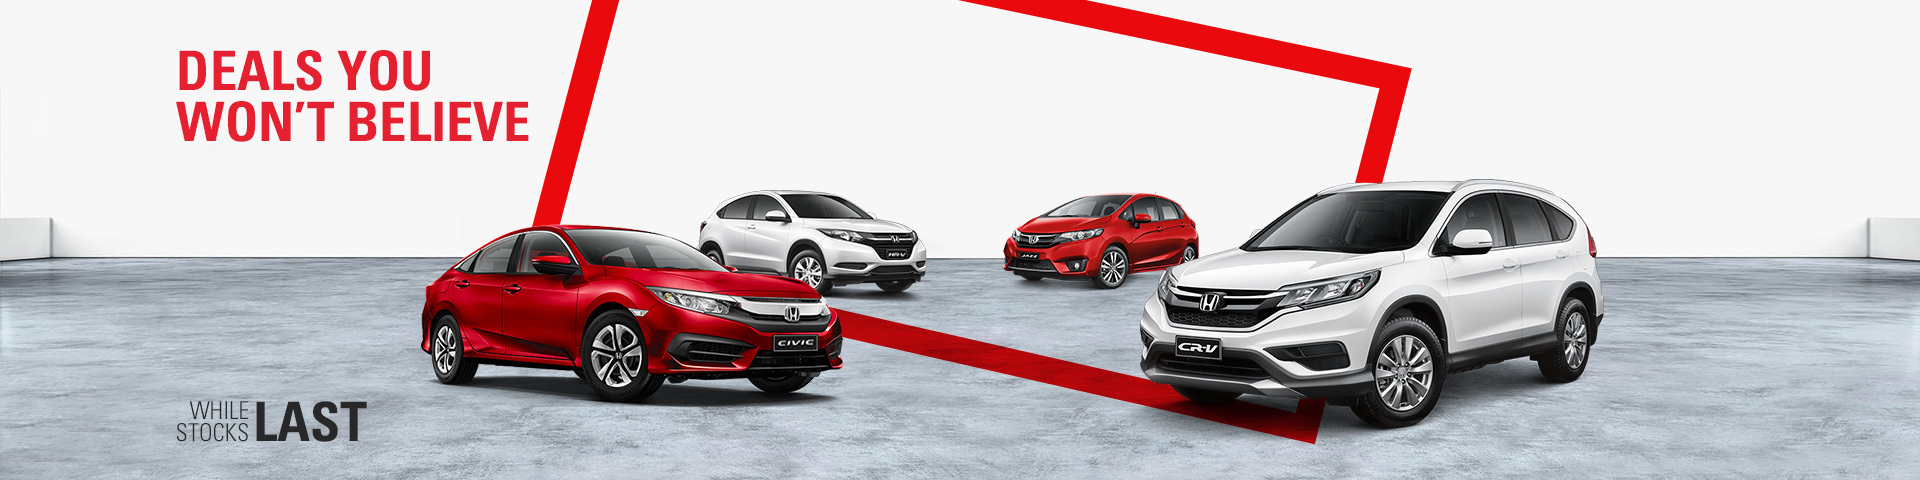 Honda - National offer - Deals You Won't Believe, While Stocks Last